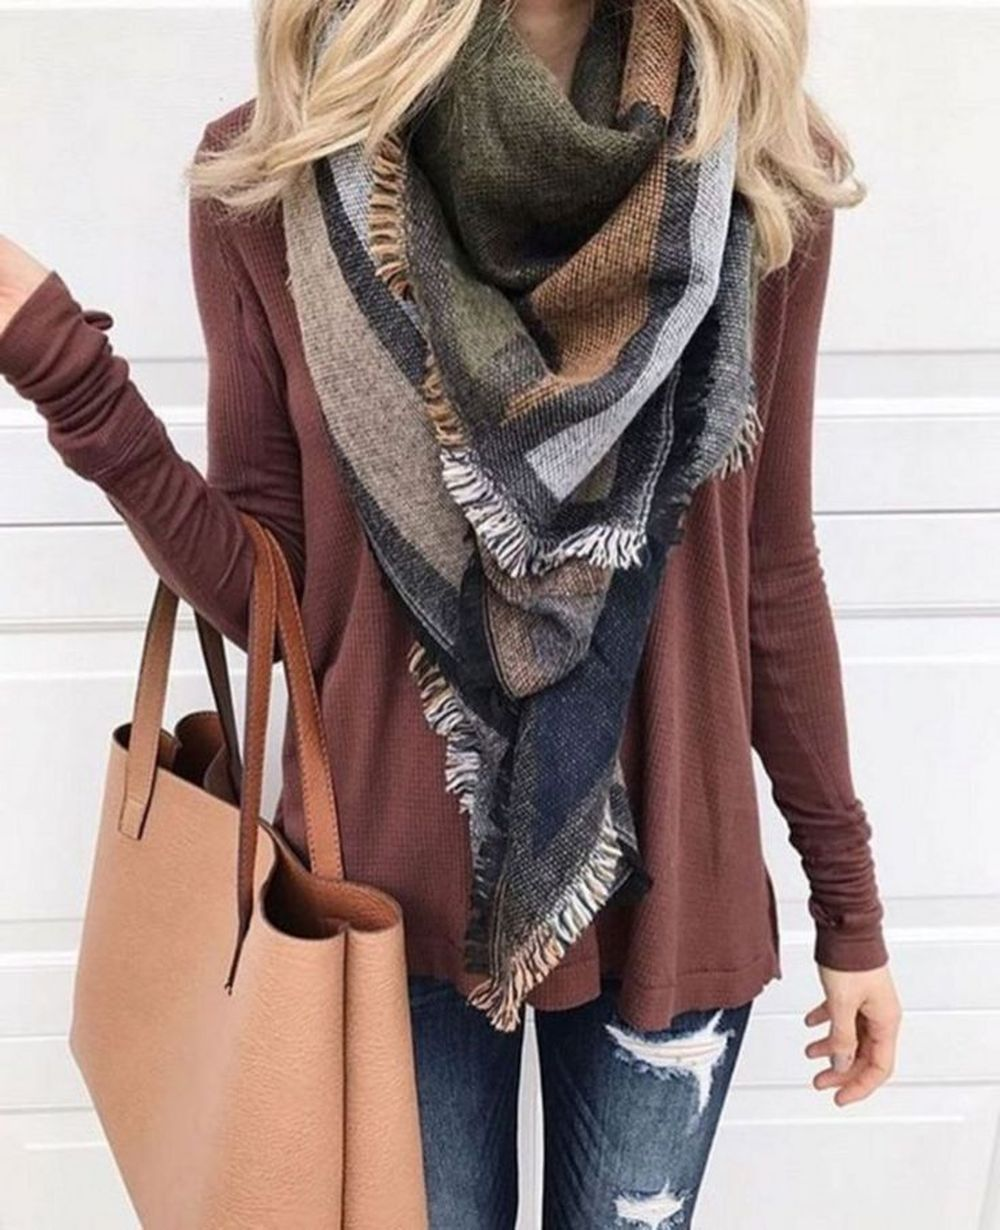 Fashionable scarves for winter outfits 49